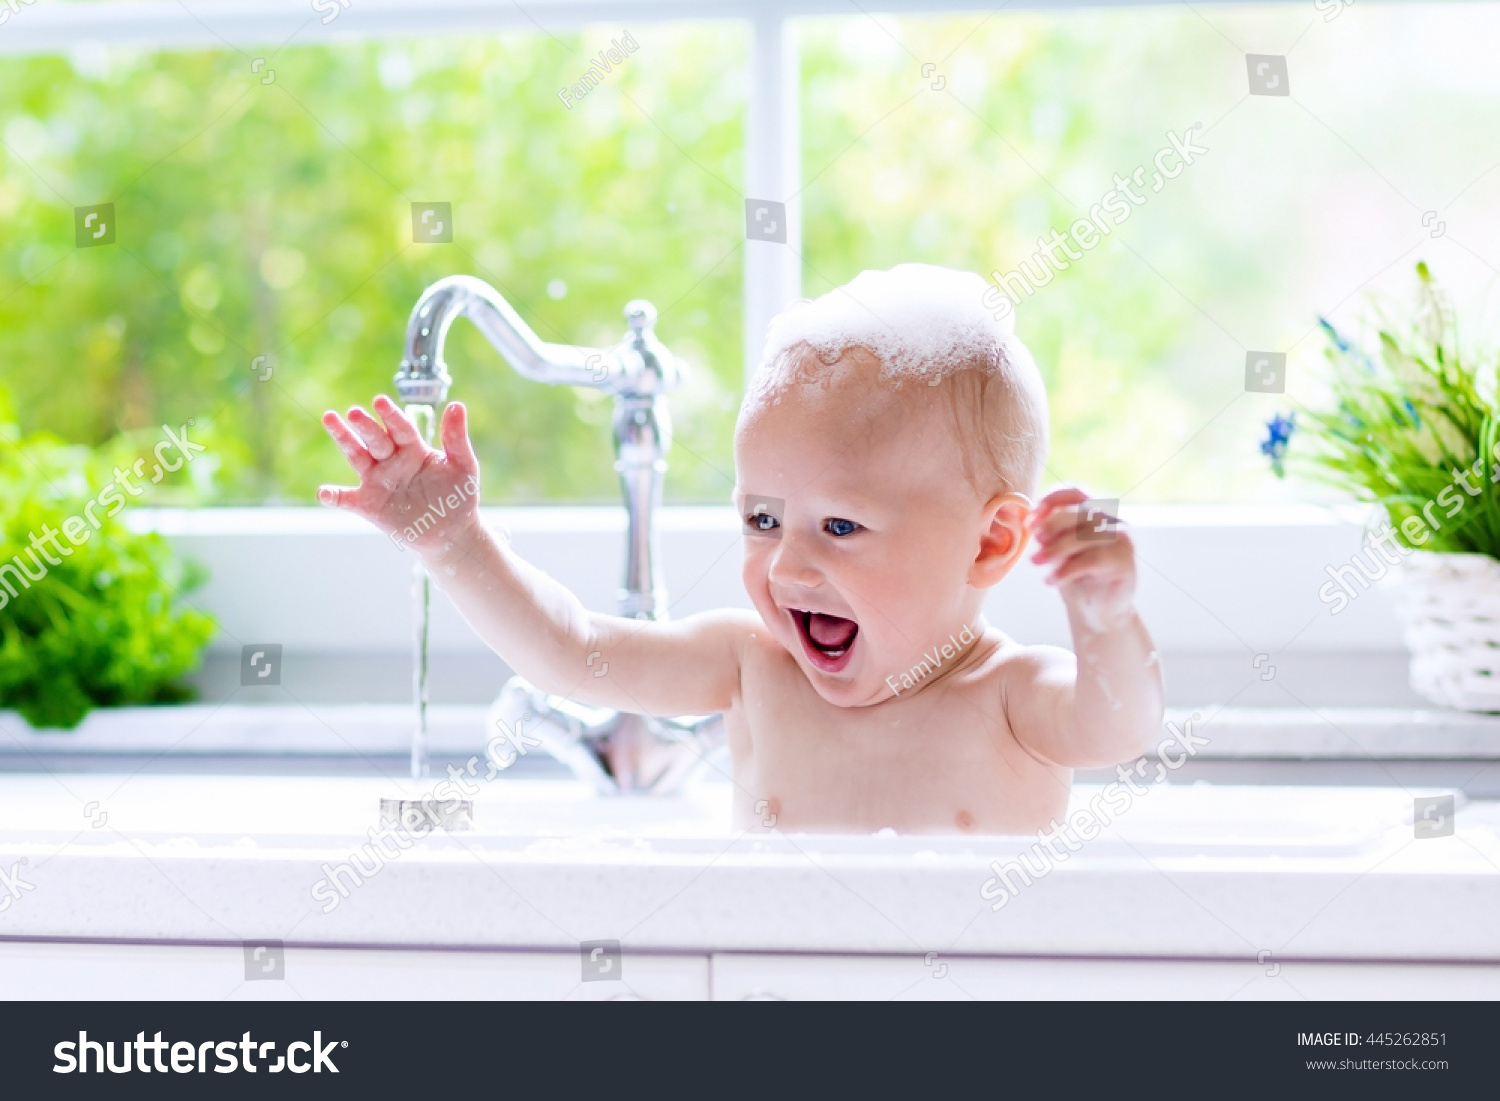 baby taking bath kitchen sink child stock photo 445262851 shutterstock. Black Bedroom Furniture Sets. Home Design Ideas